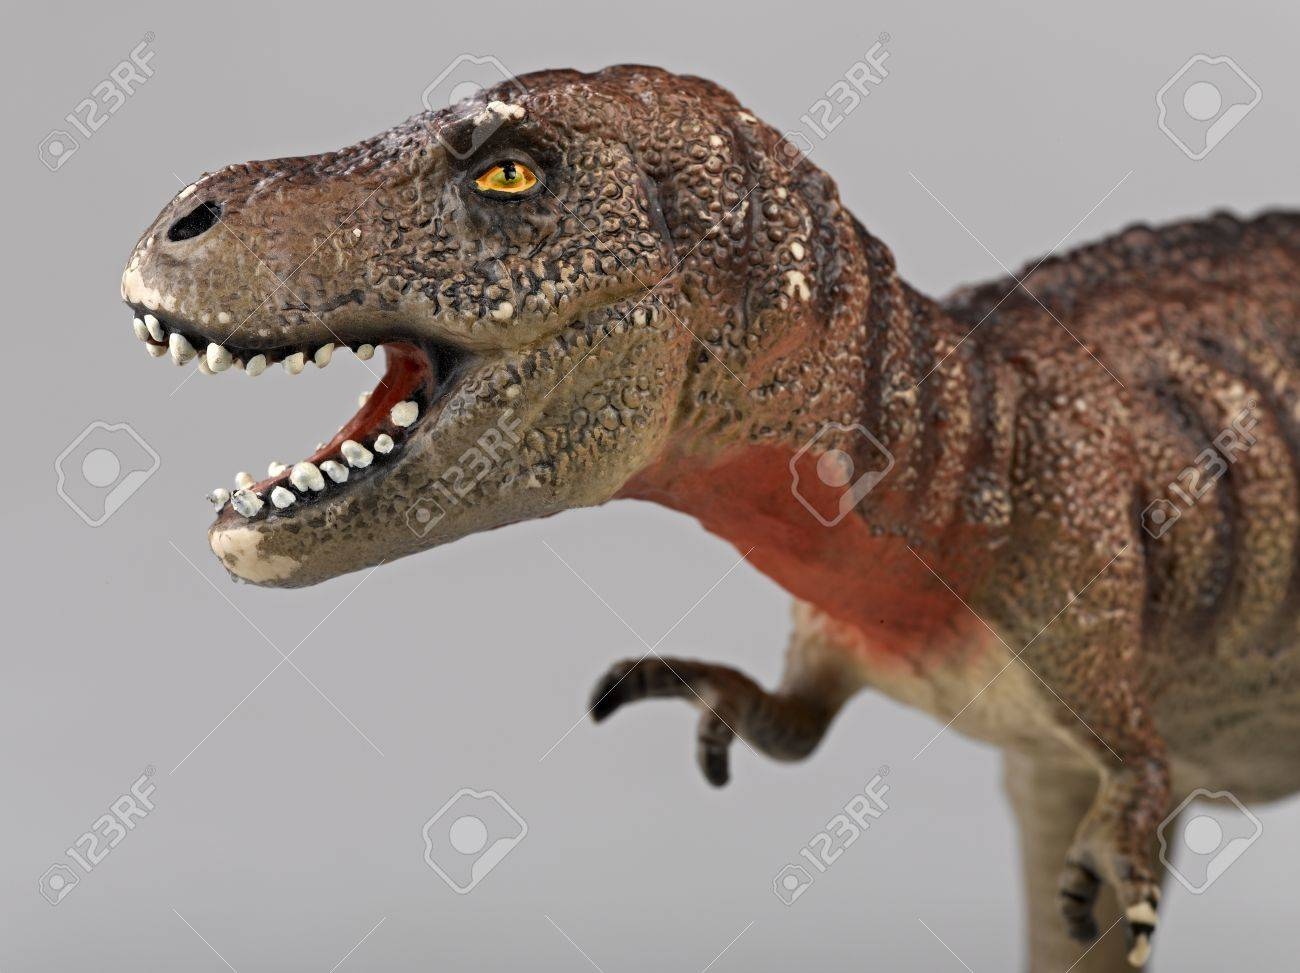 Tyrannosaurus Rex Side View Stock Photo Picture And Royalty Free Image Image 17388400